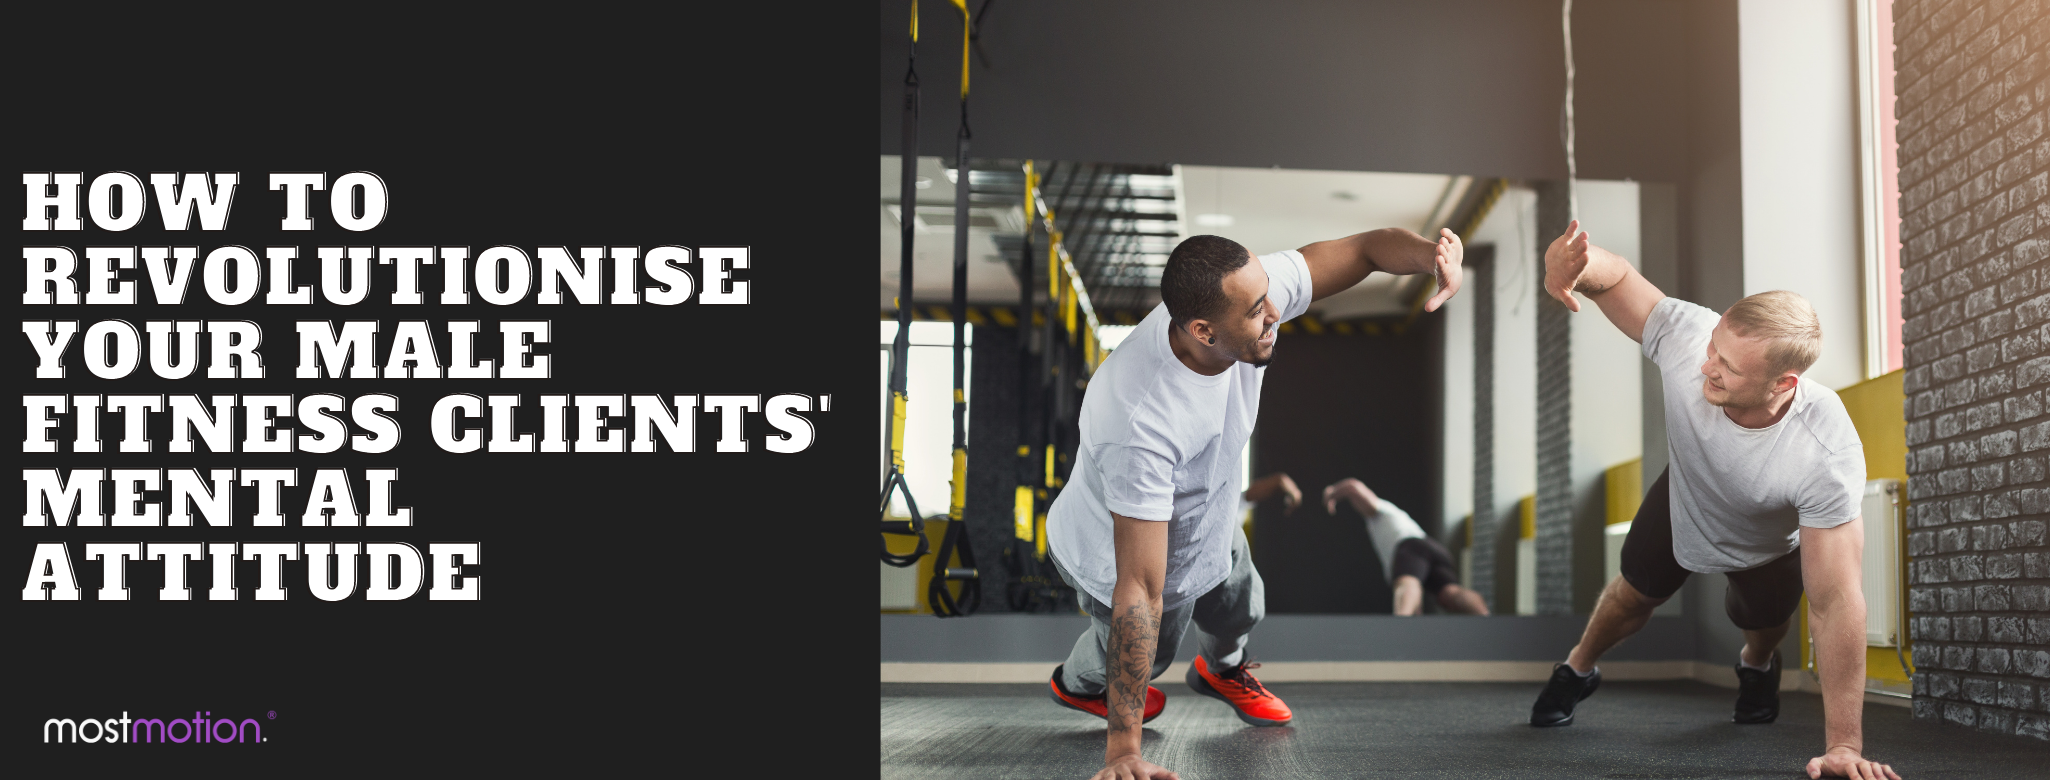 How to Revolutionise Your Male Fitness Clients' Mental Attitude